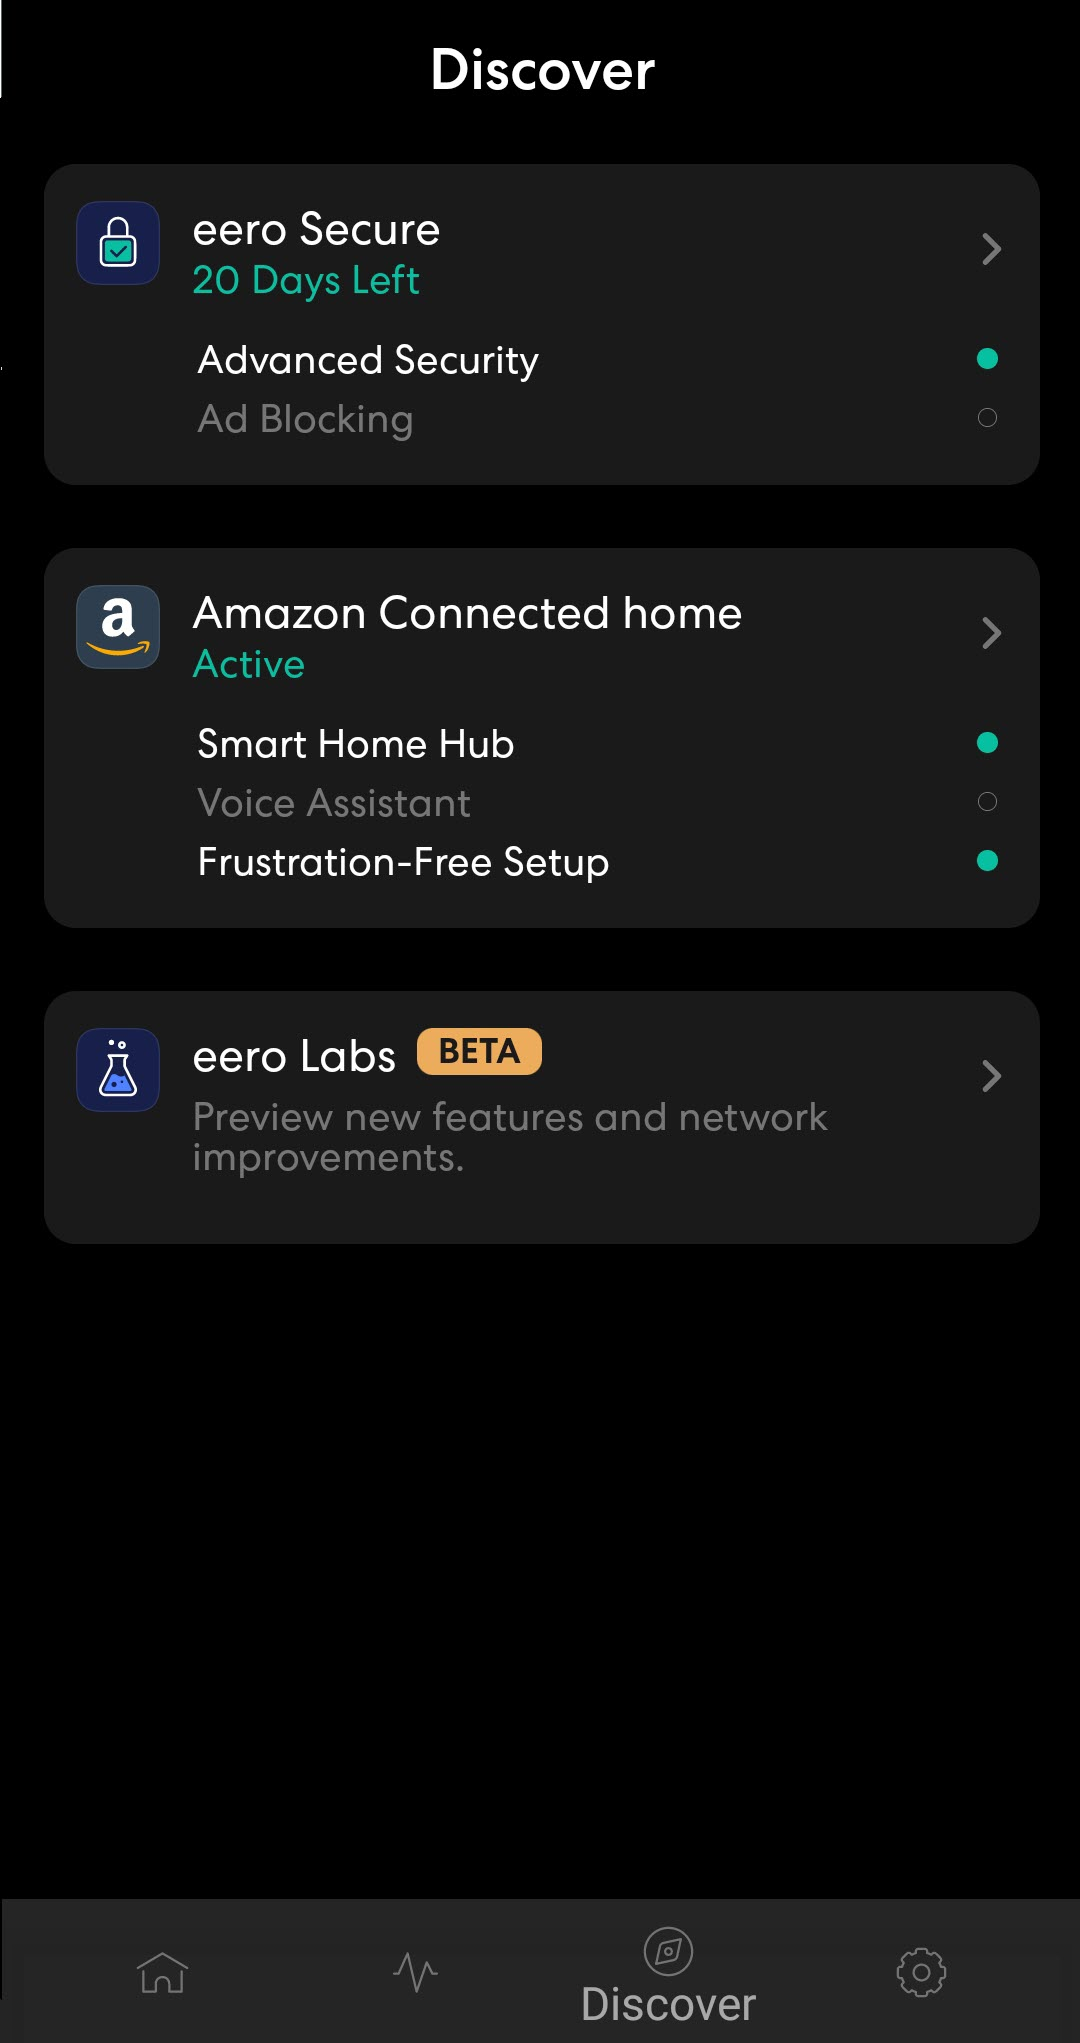 Discover tab in the eero Pro app